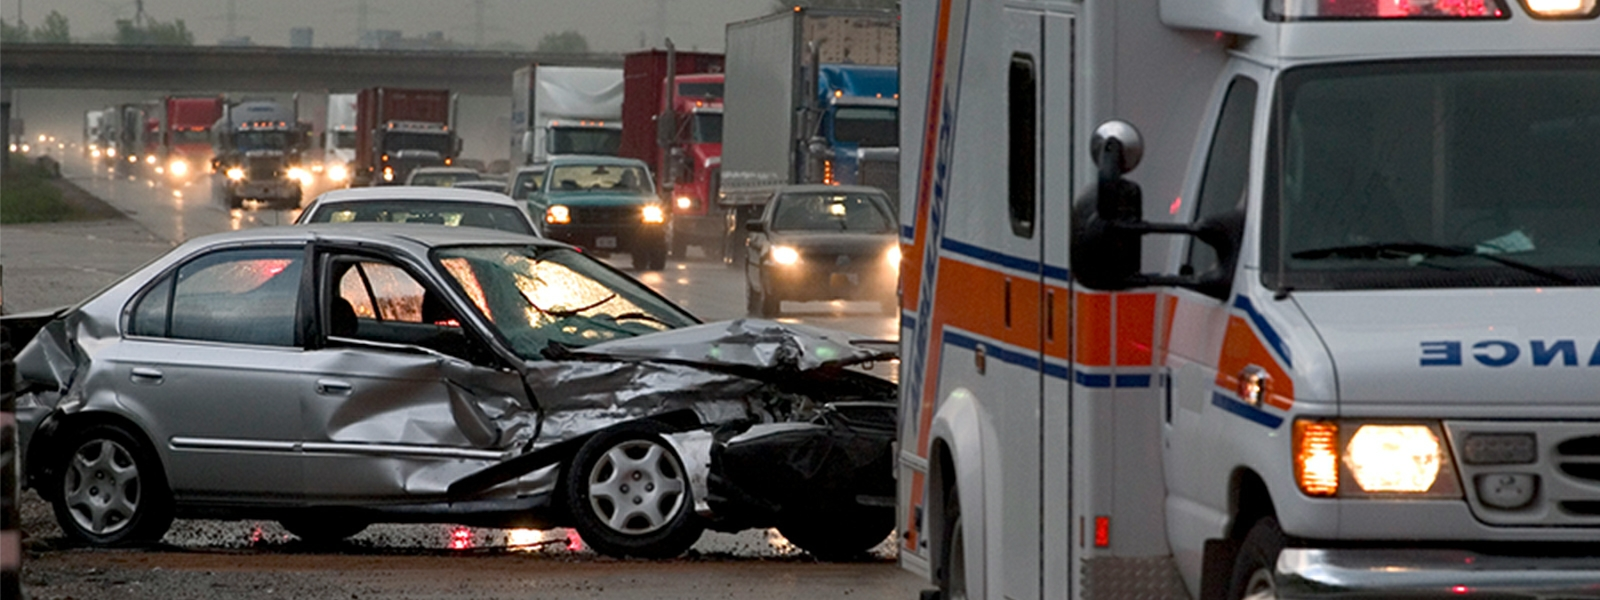 car accident columbia sc  Auto Accident Injury Lawyer | South Carolina | Law Office of Carter ...